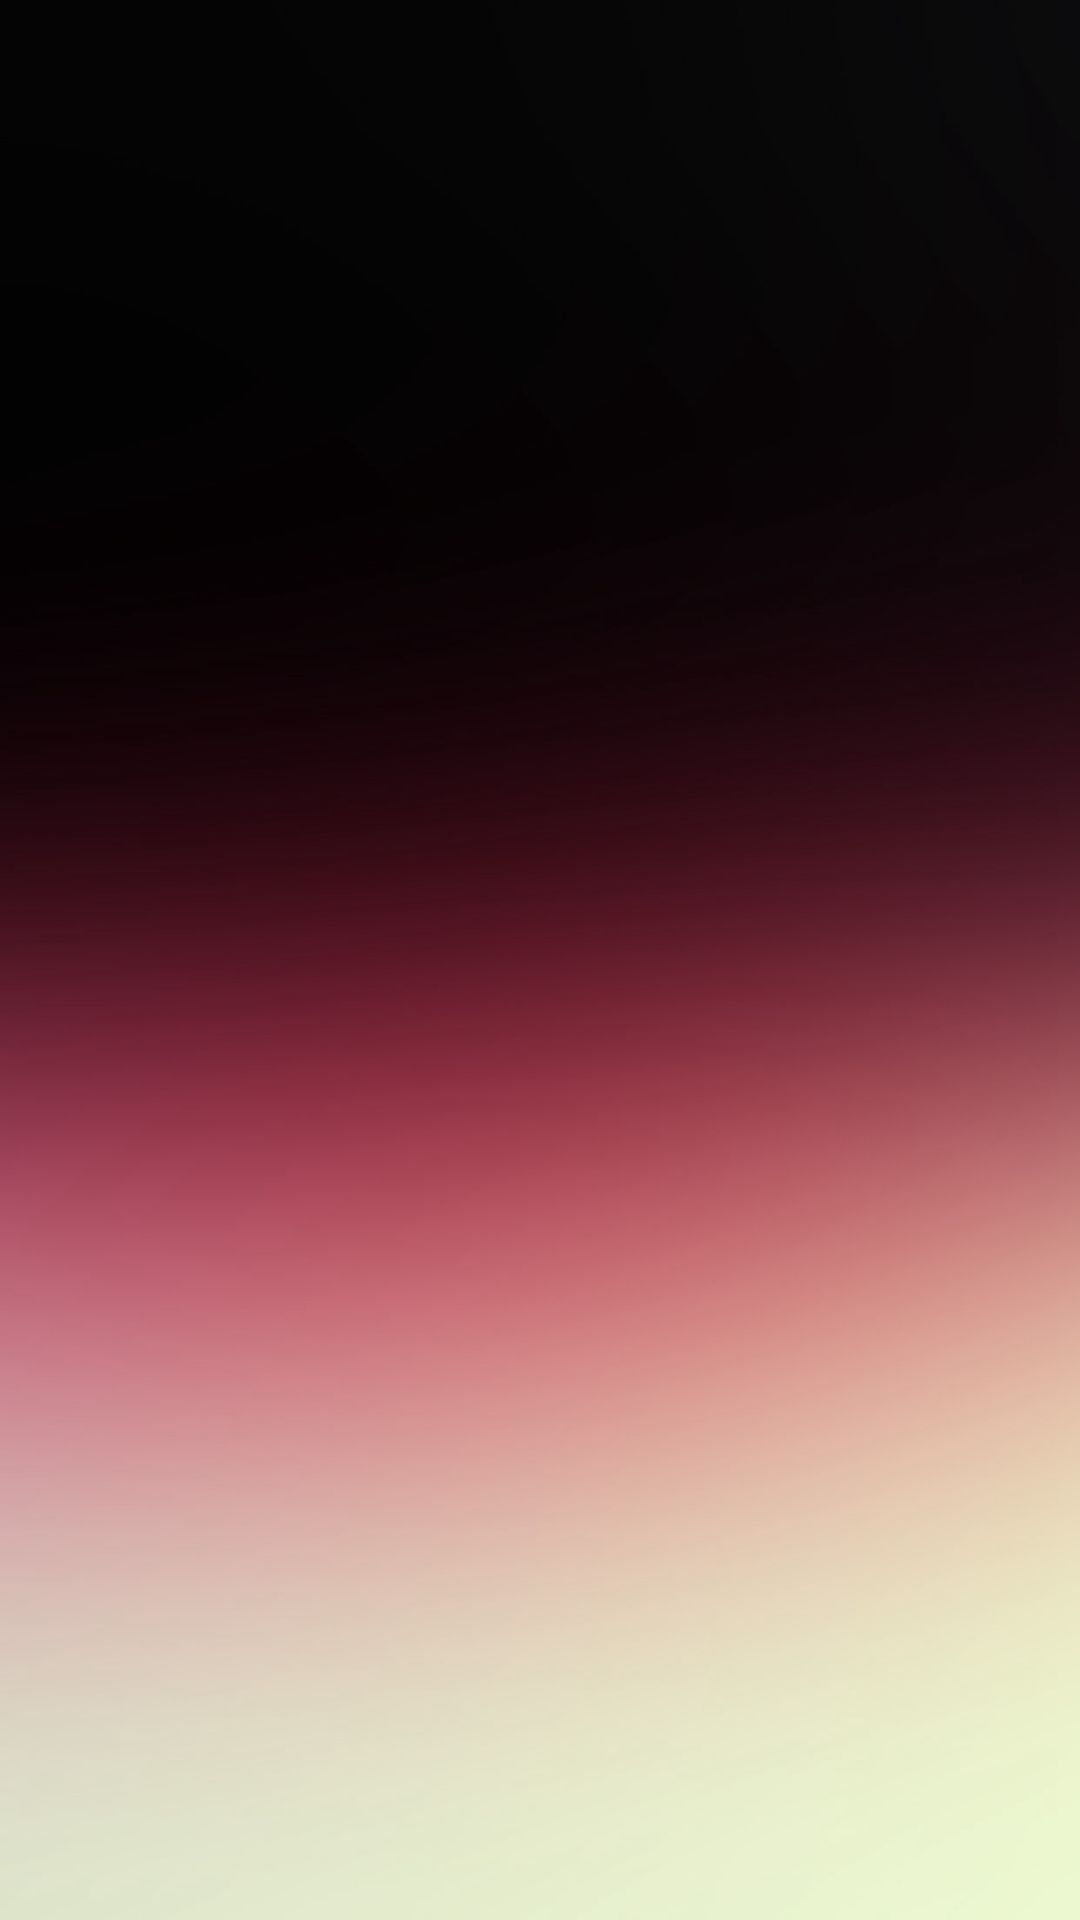 Dark Red Bokeh Gradation Blur Pink iPhone 6 wallpaper